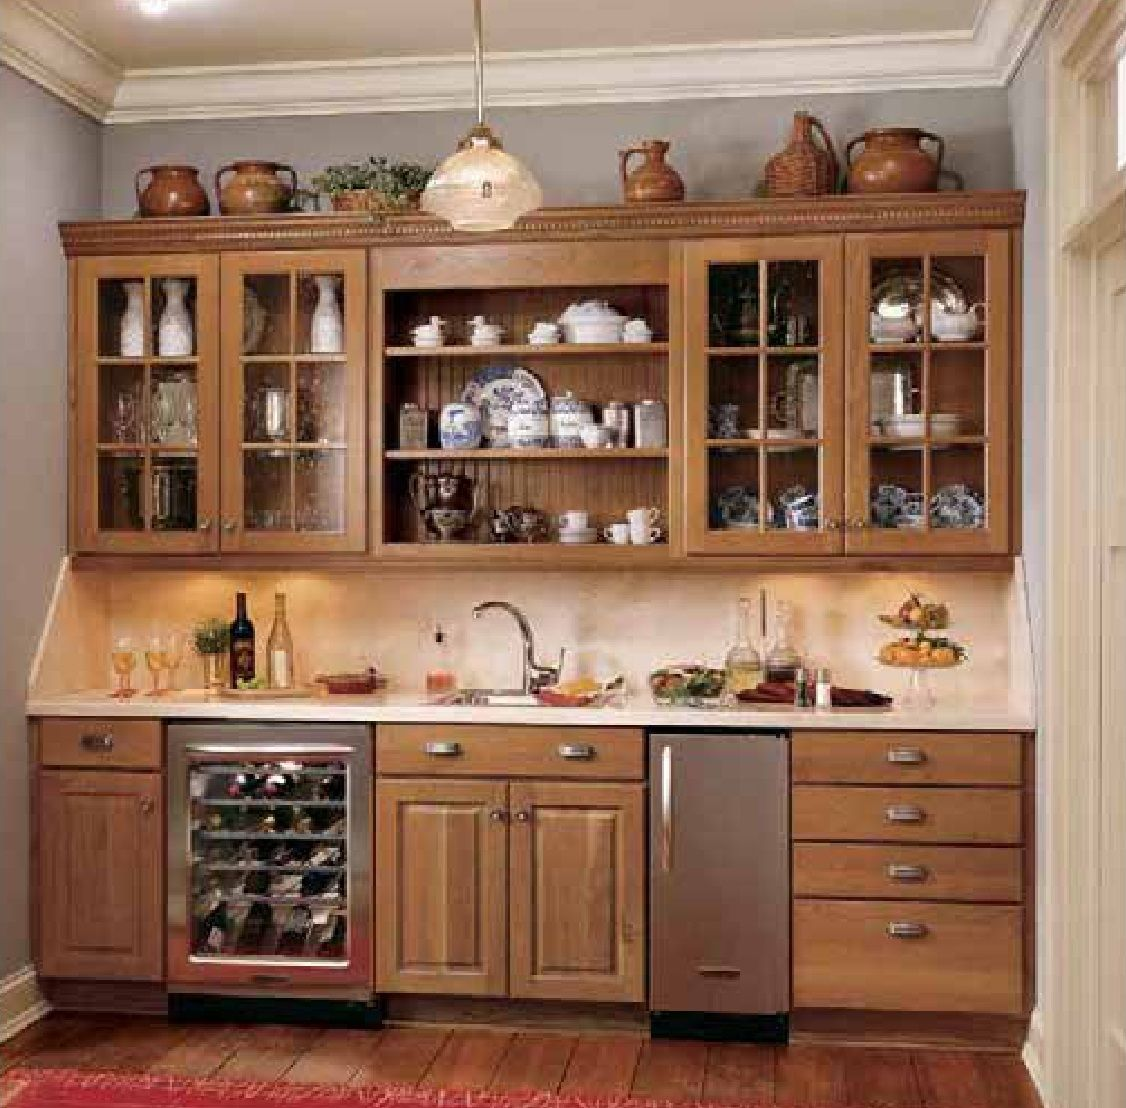 Duncan Cabinets From Norcraft Cabinetry Cherry Harvest Old Kitchen Cabinets Cheap Kitchen Cabinets Wood Kitchen Cabinets